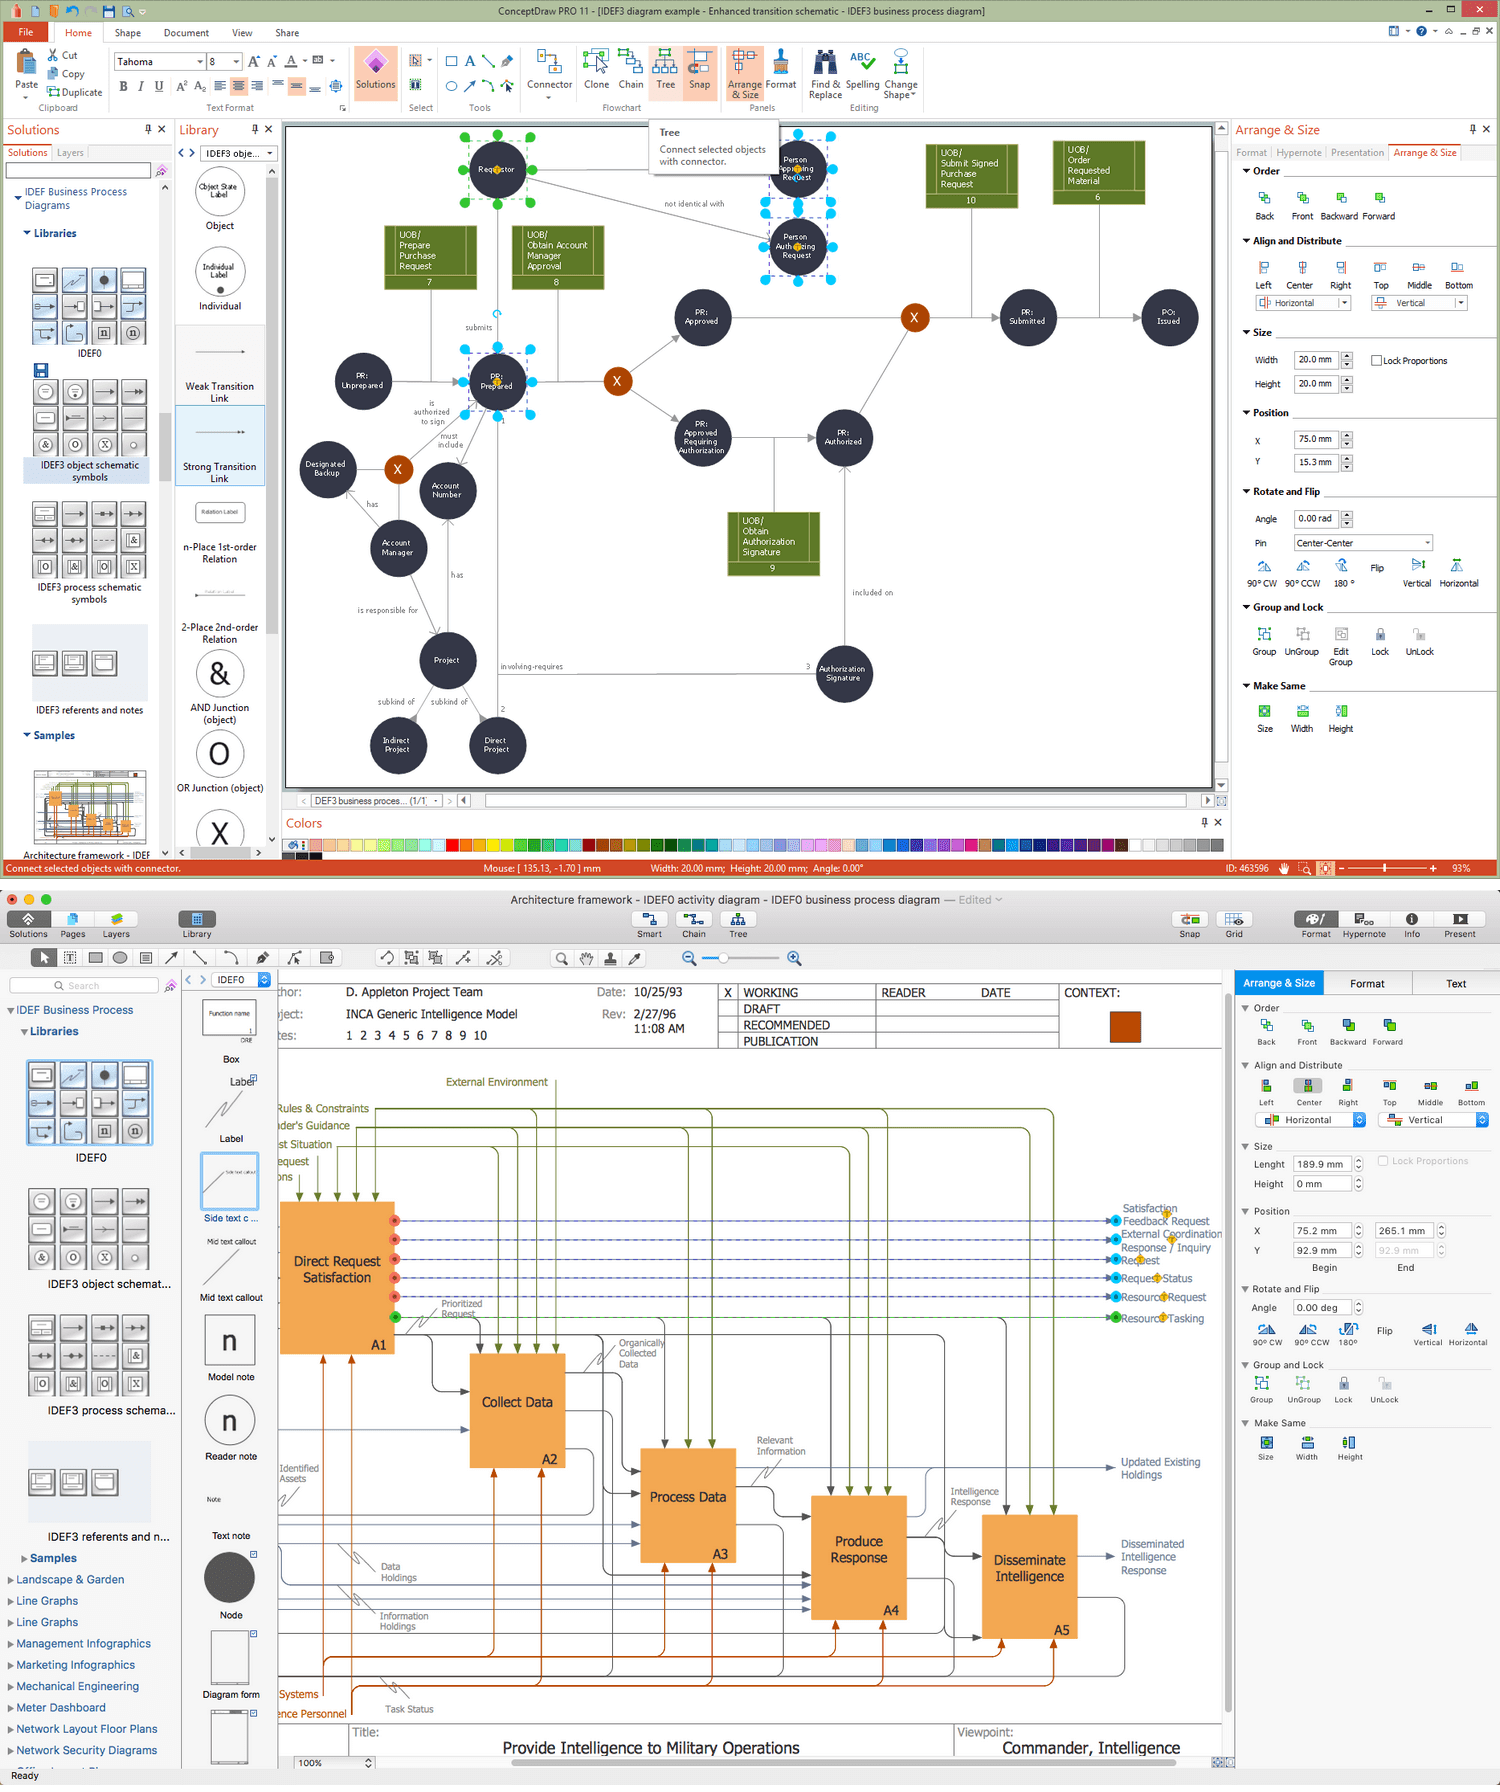 hight resolution of conceptdraw pro extended with idef business process diagrams solution from the business processes area of conceptdraw solution park is an ideal software for